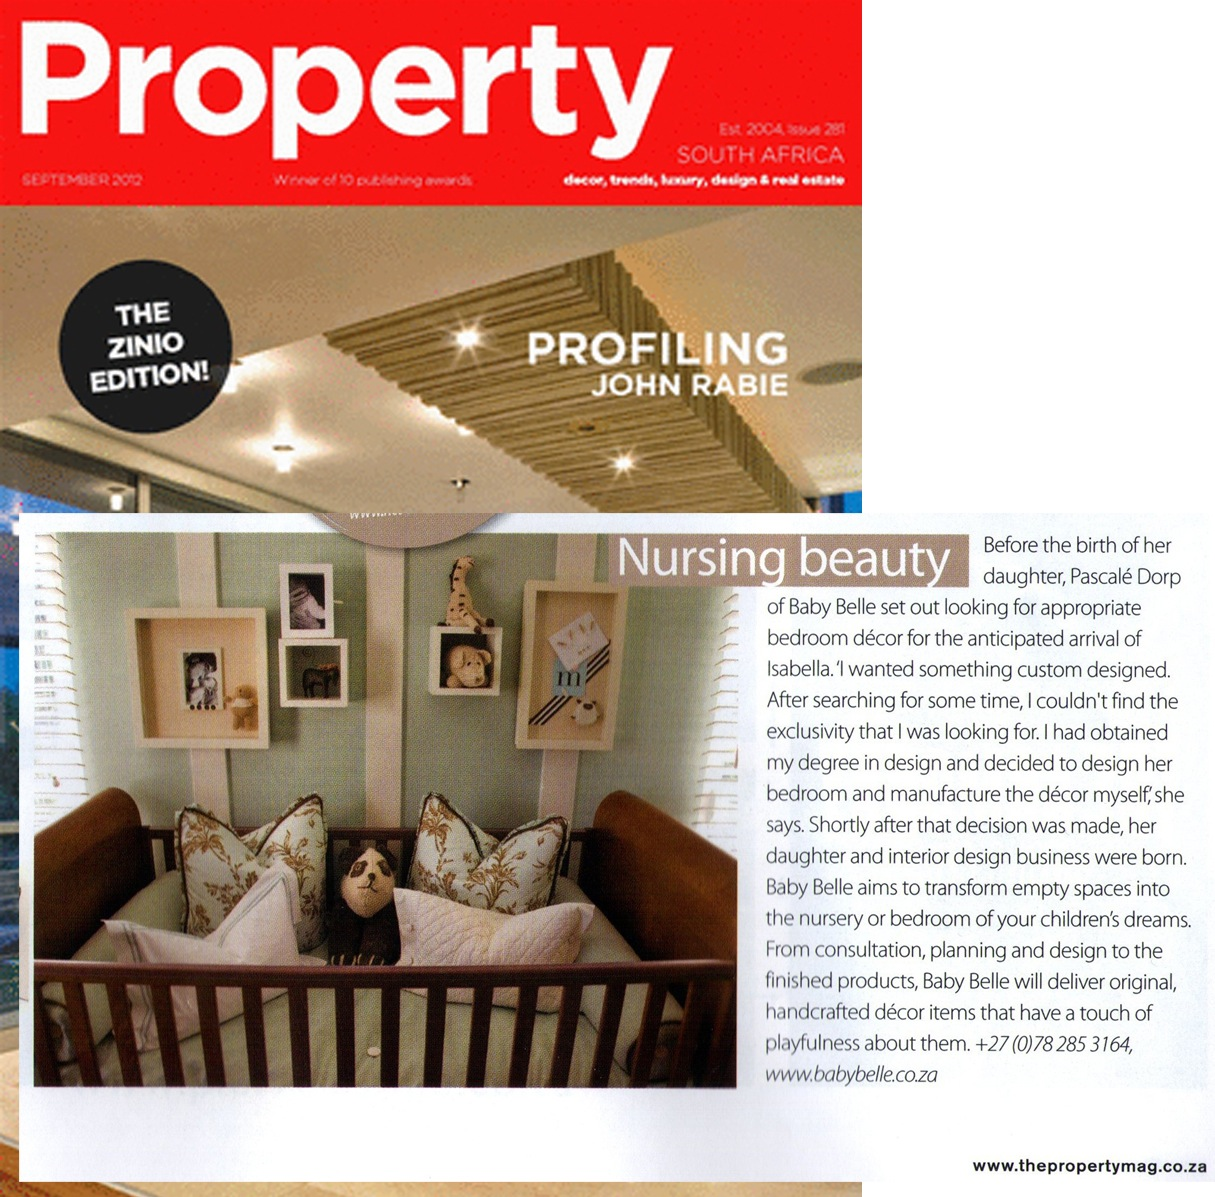 The Property Mag Sept 2012